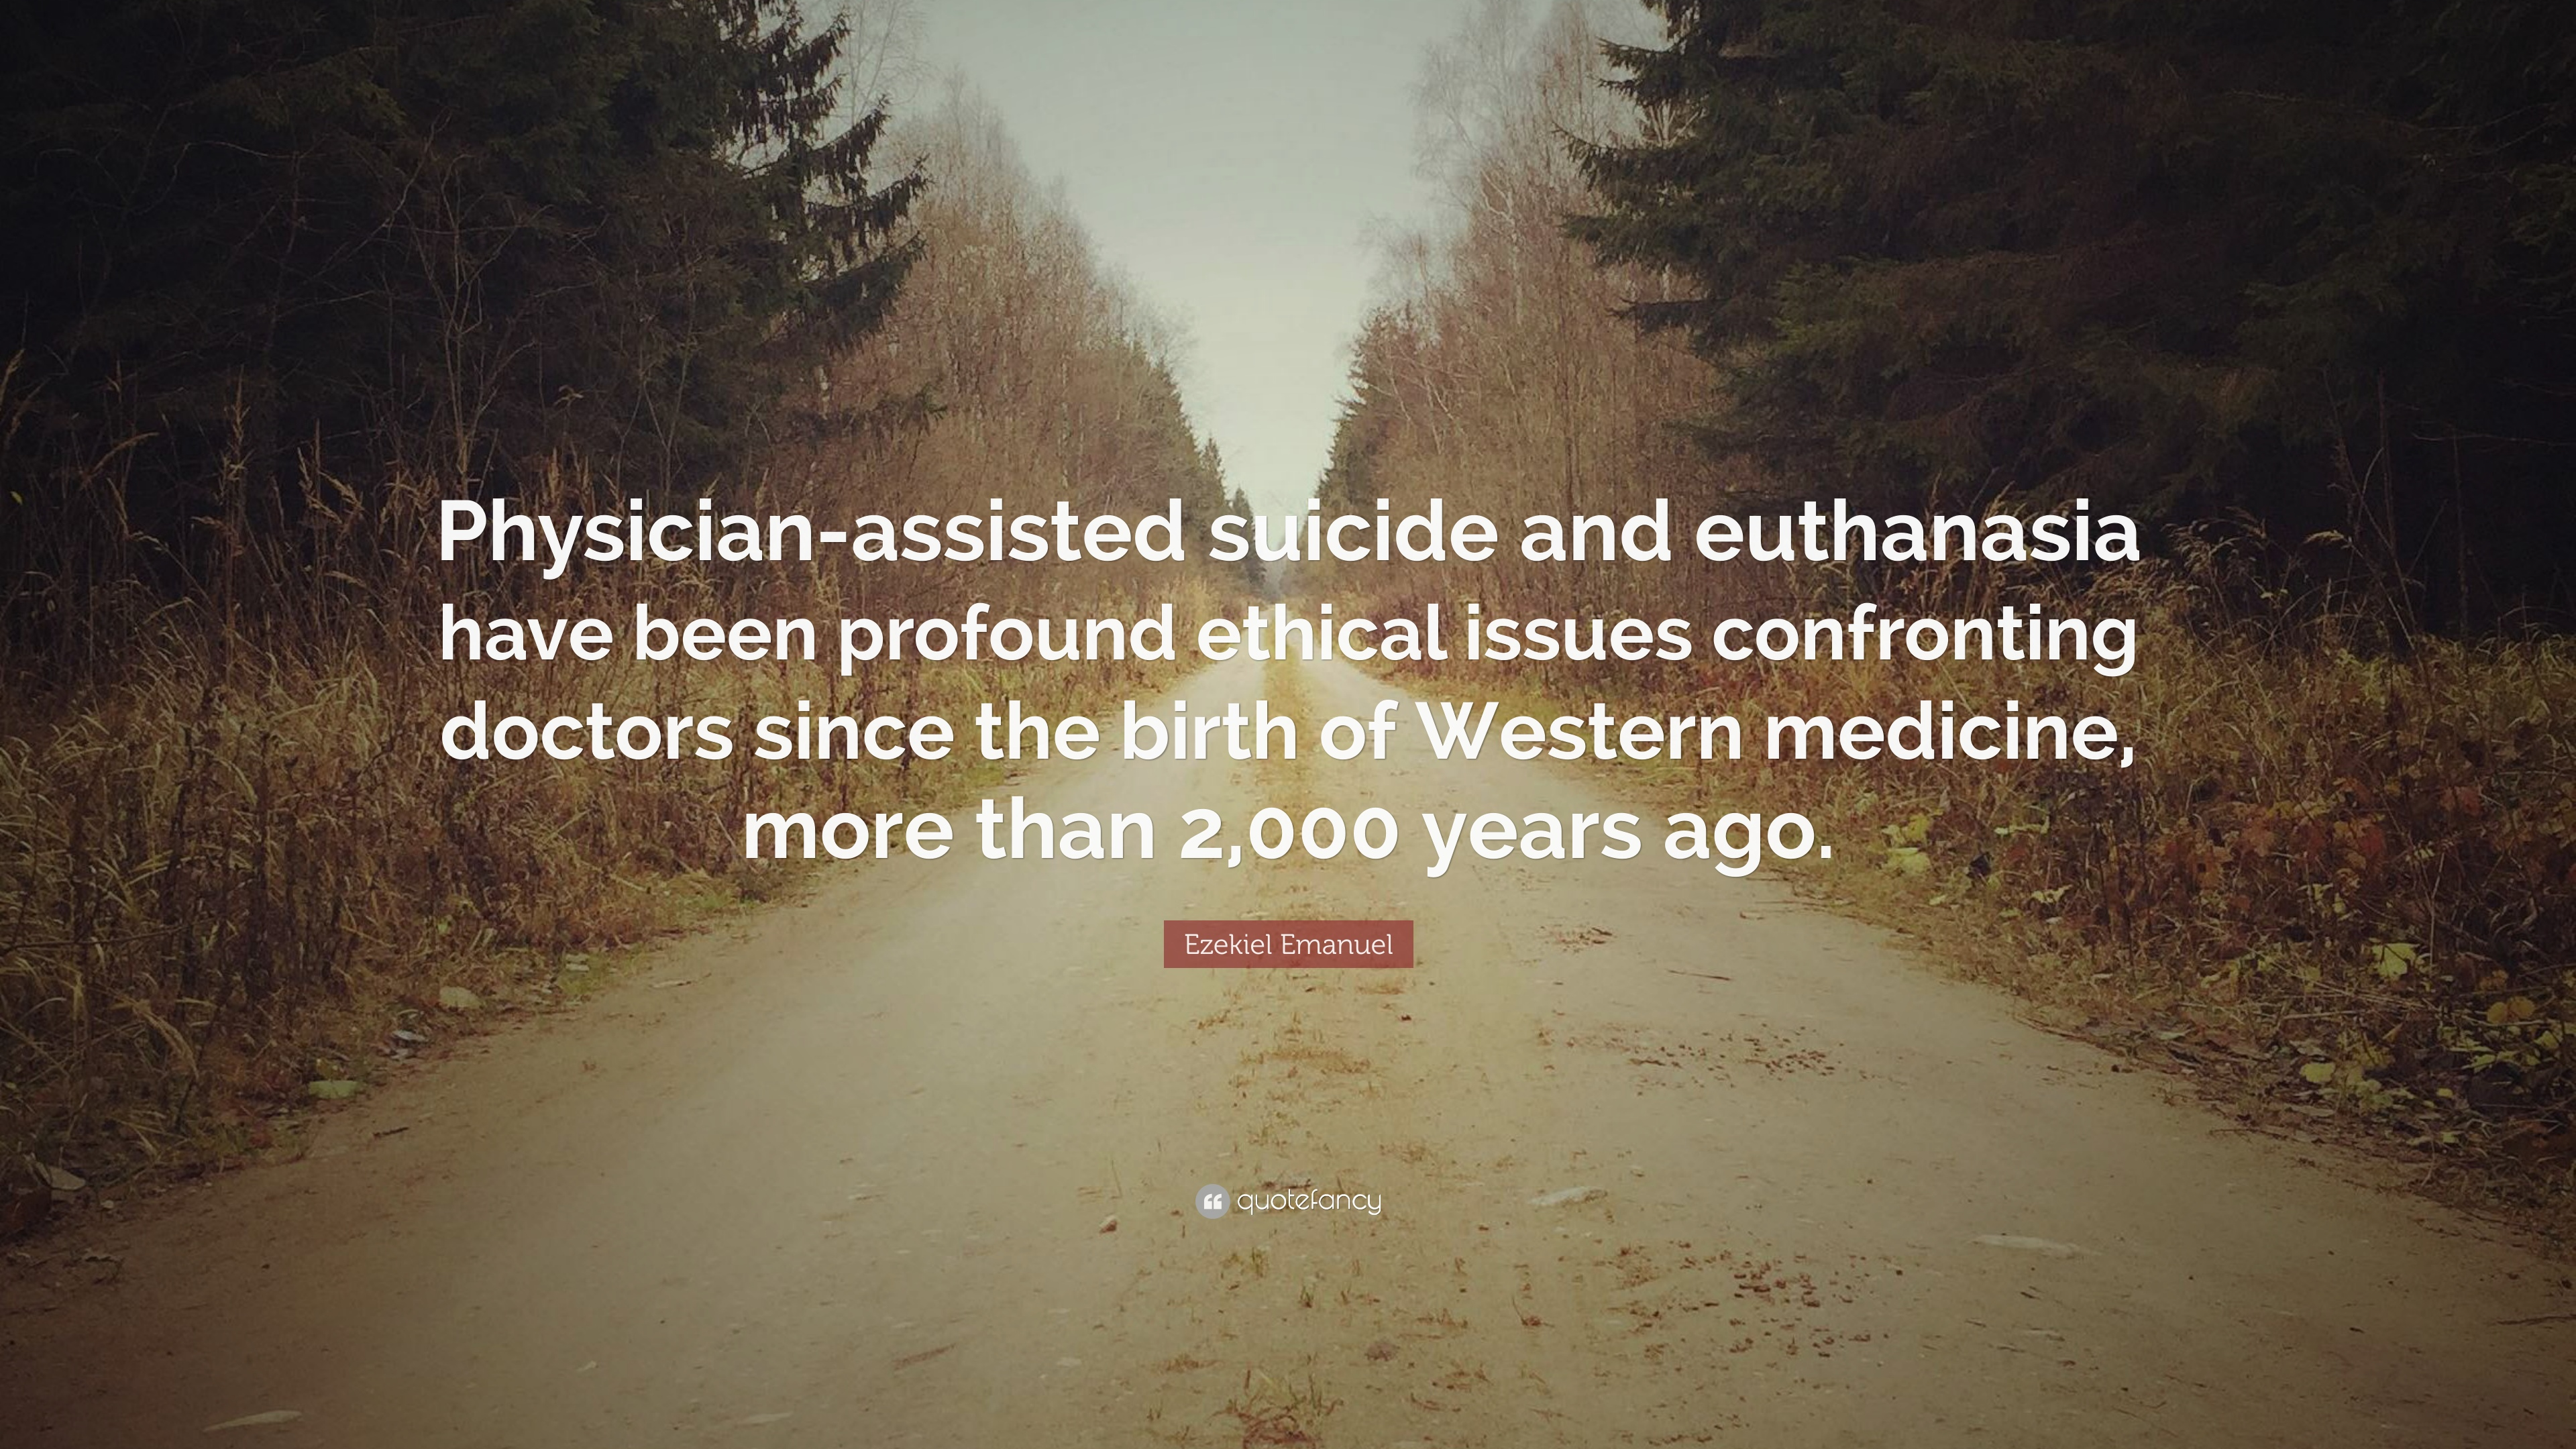 an analysis of the moral dilemma of euthanasia The ethical dilemma of euthanasia, public policy analysis for ethical  the moral theory also says that individuals are  the ethical dilemma of euthanasia,.